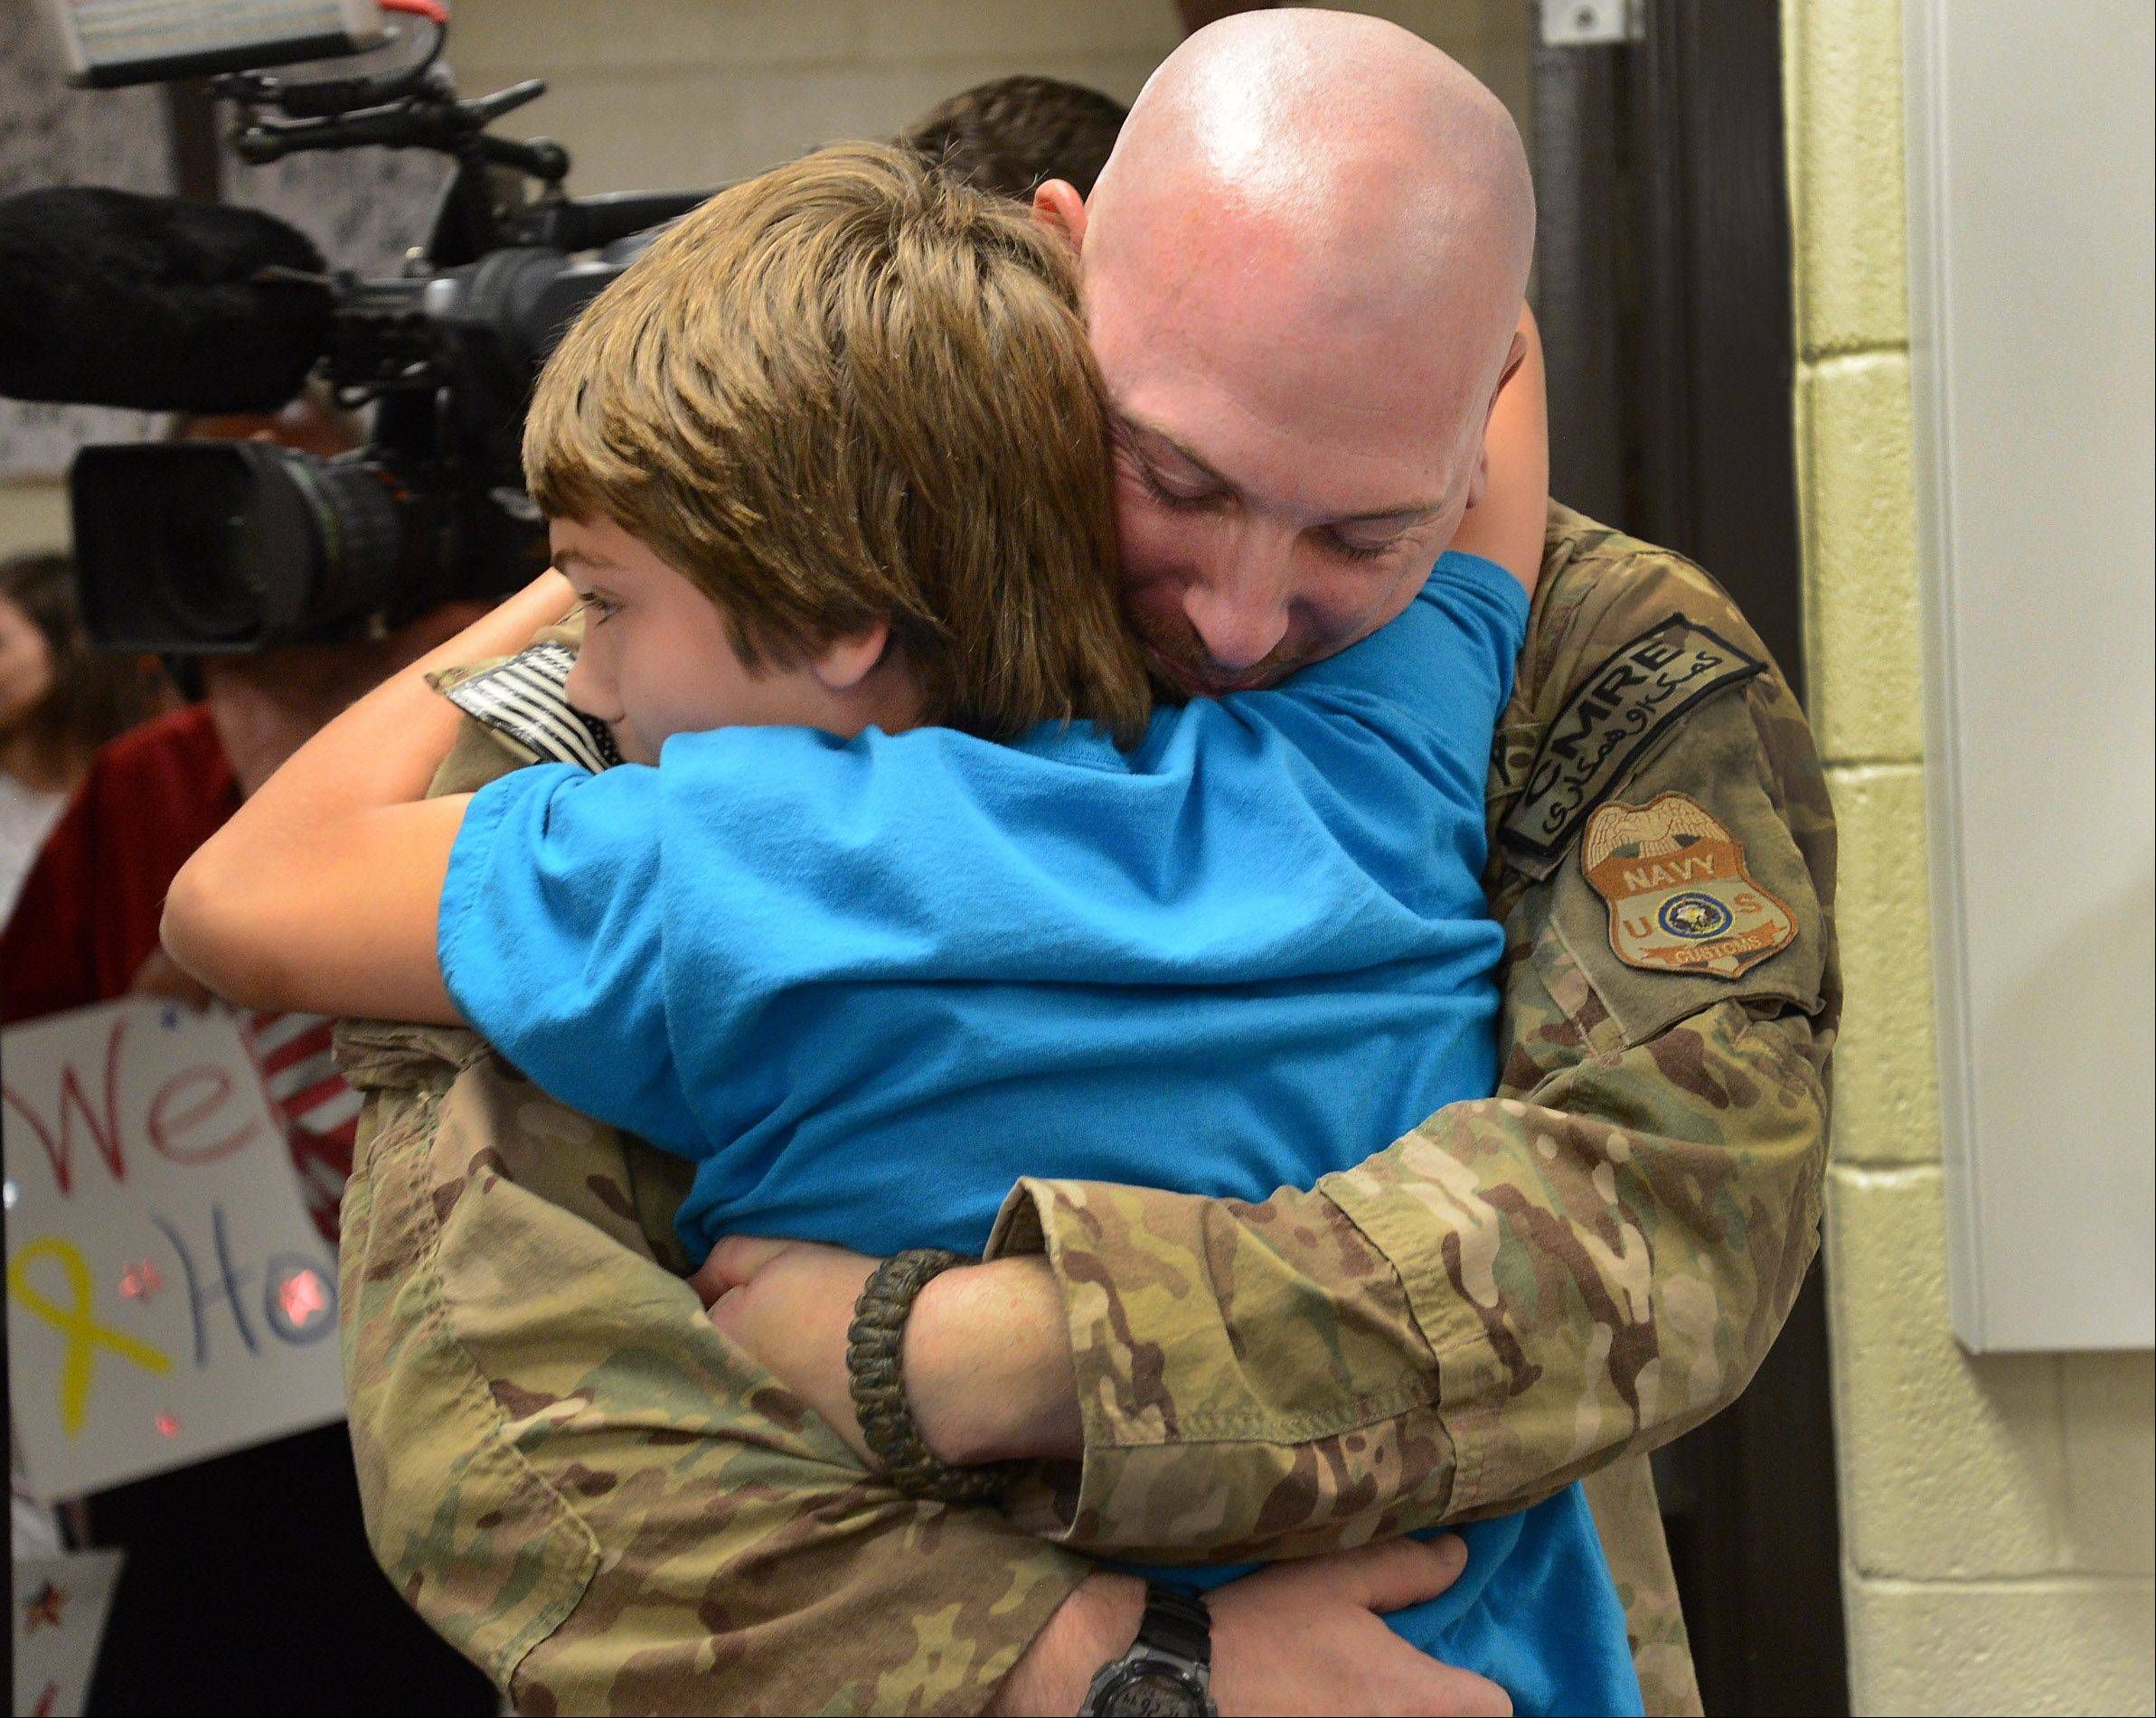 Navy Chief Gunner's Mate Patrick Fissette embraces son Tristan on Friday at Mead Junior High School.